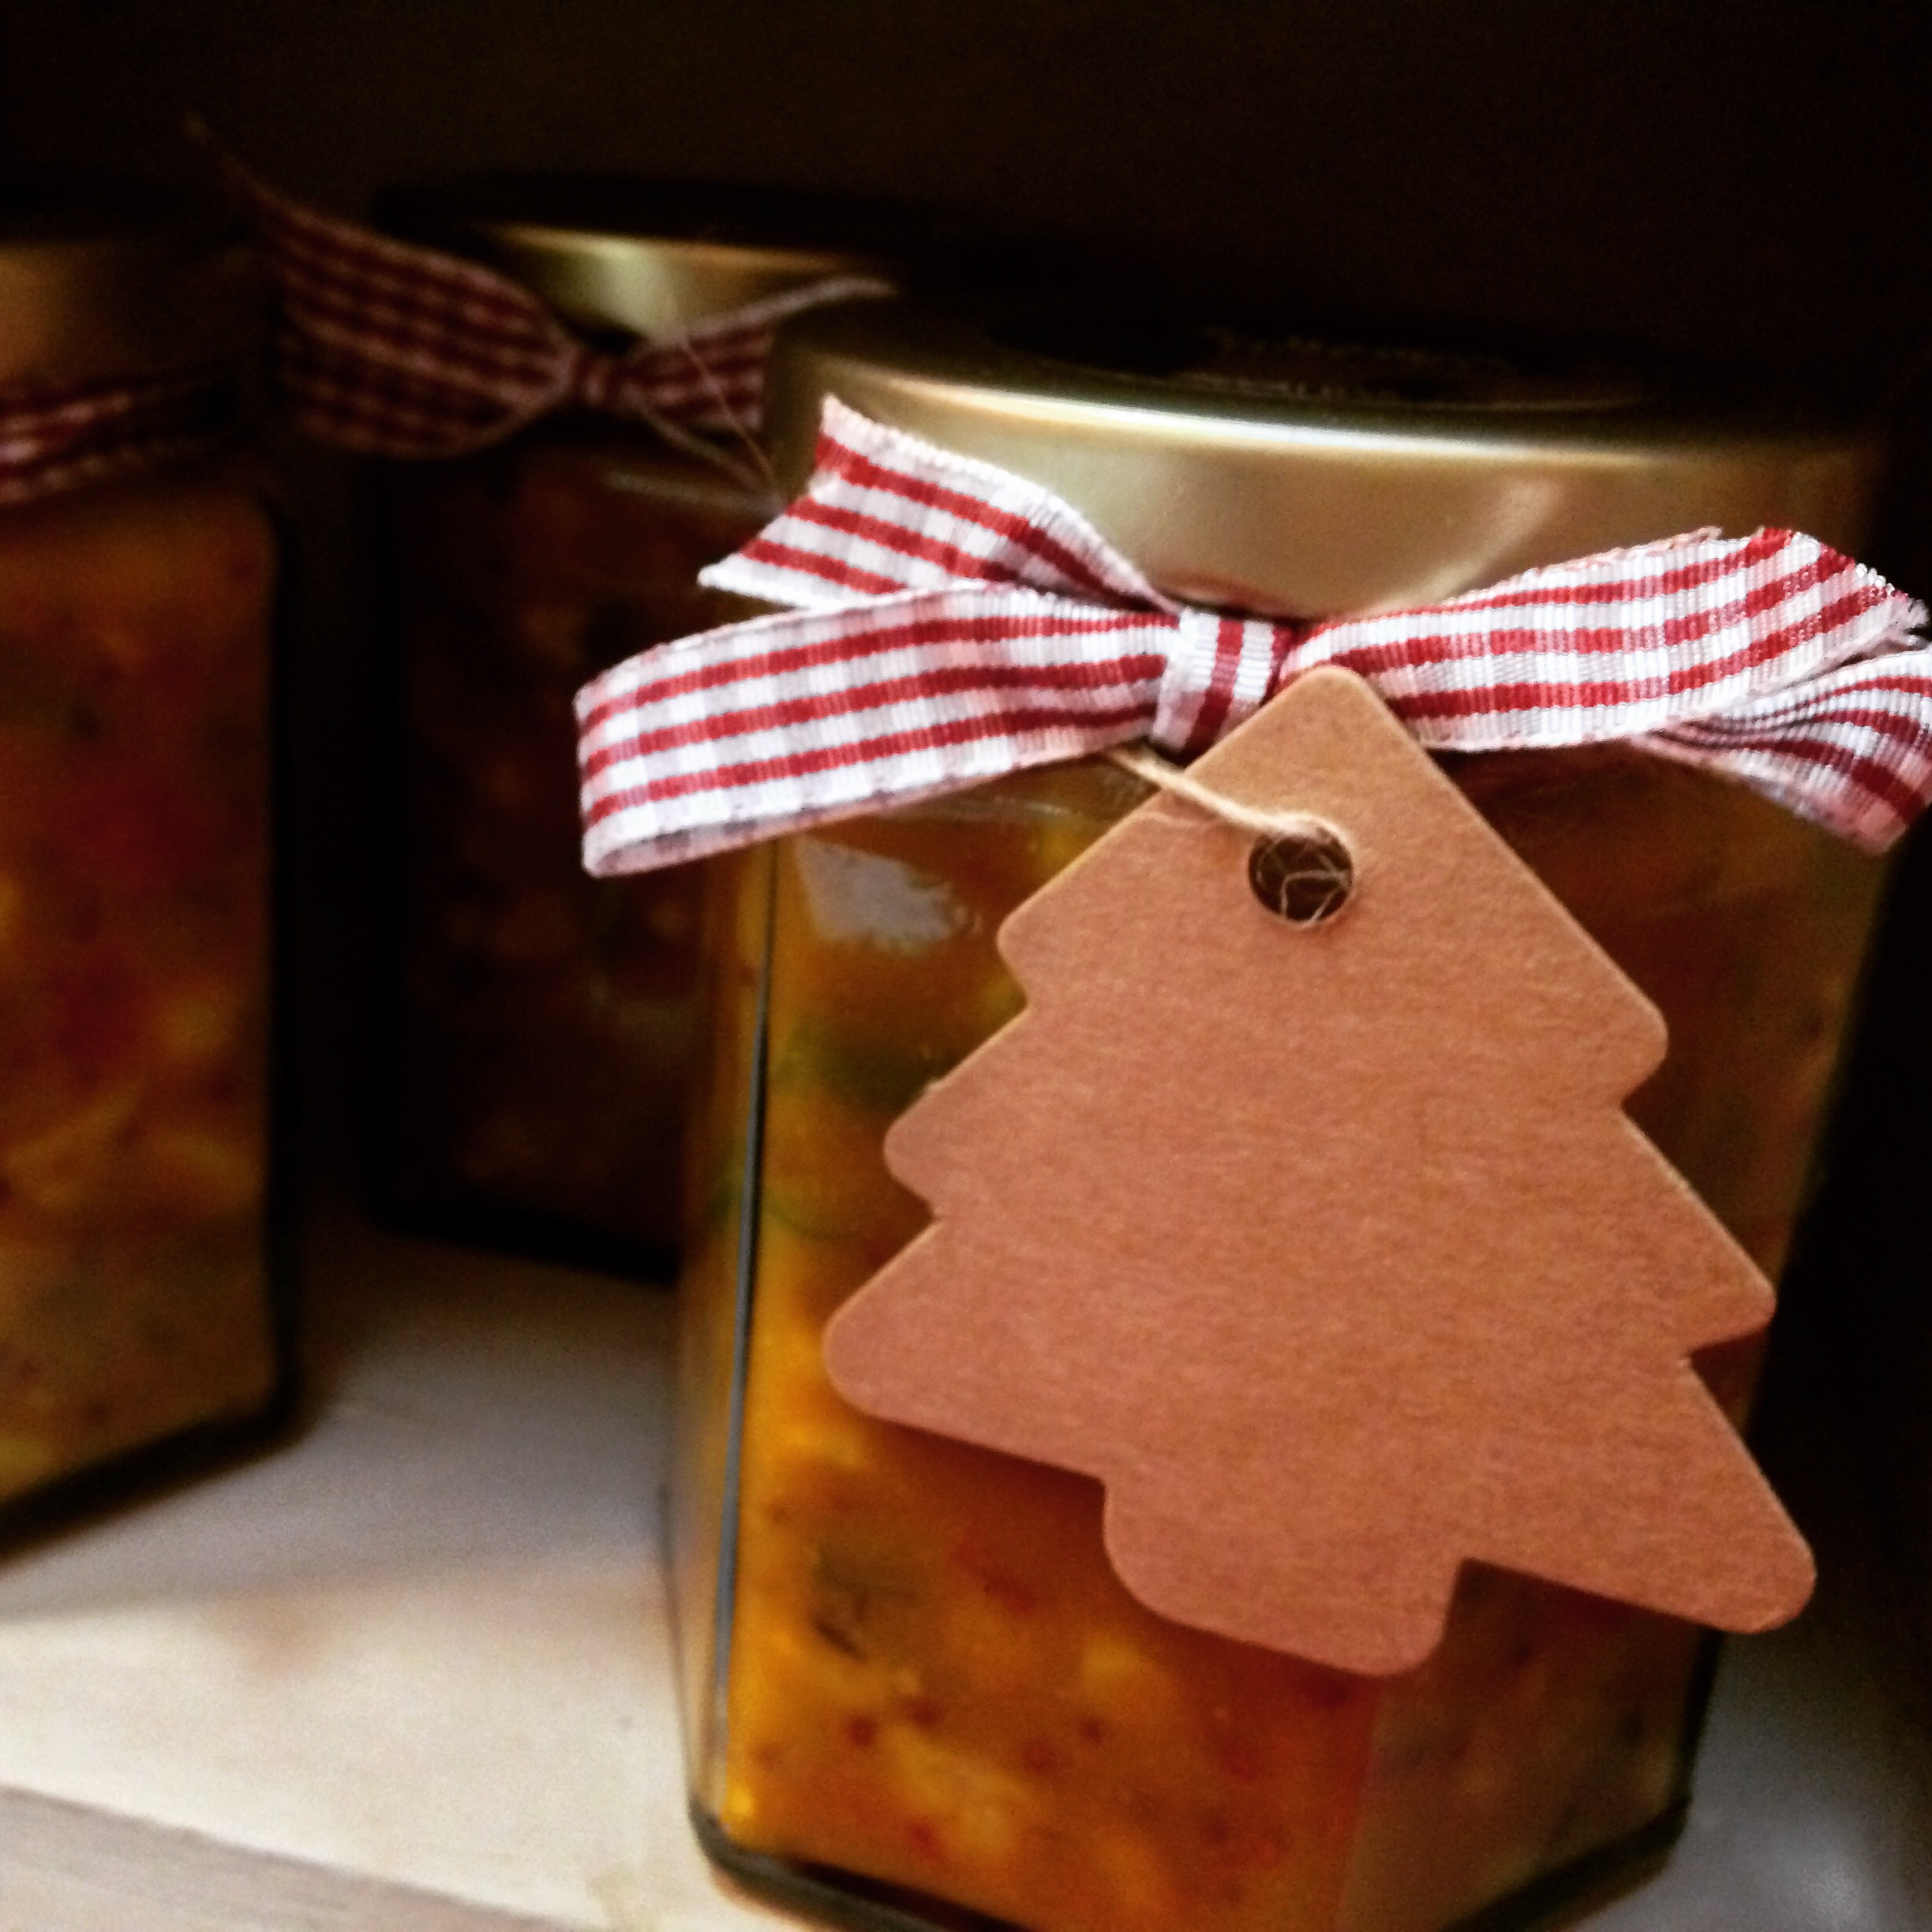 Homemade Piccalilli is perfect for Christmas leftovers, Boxing Day & to give as gifts.